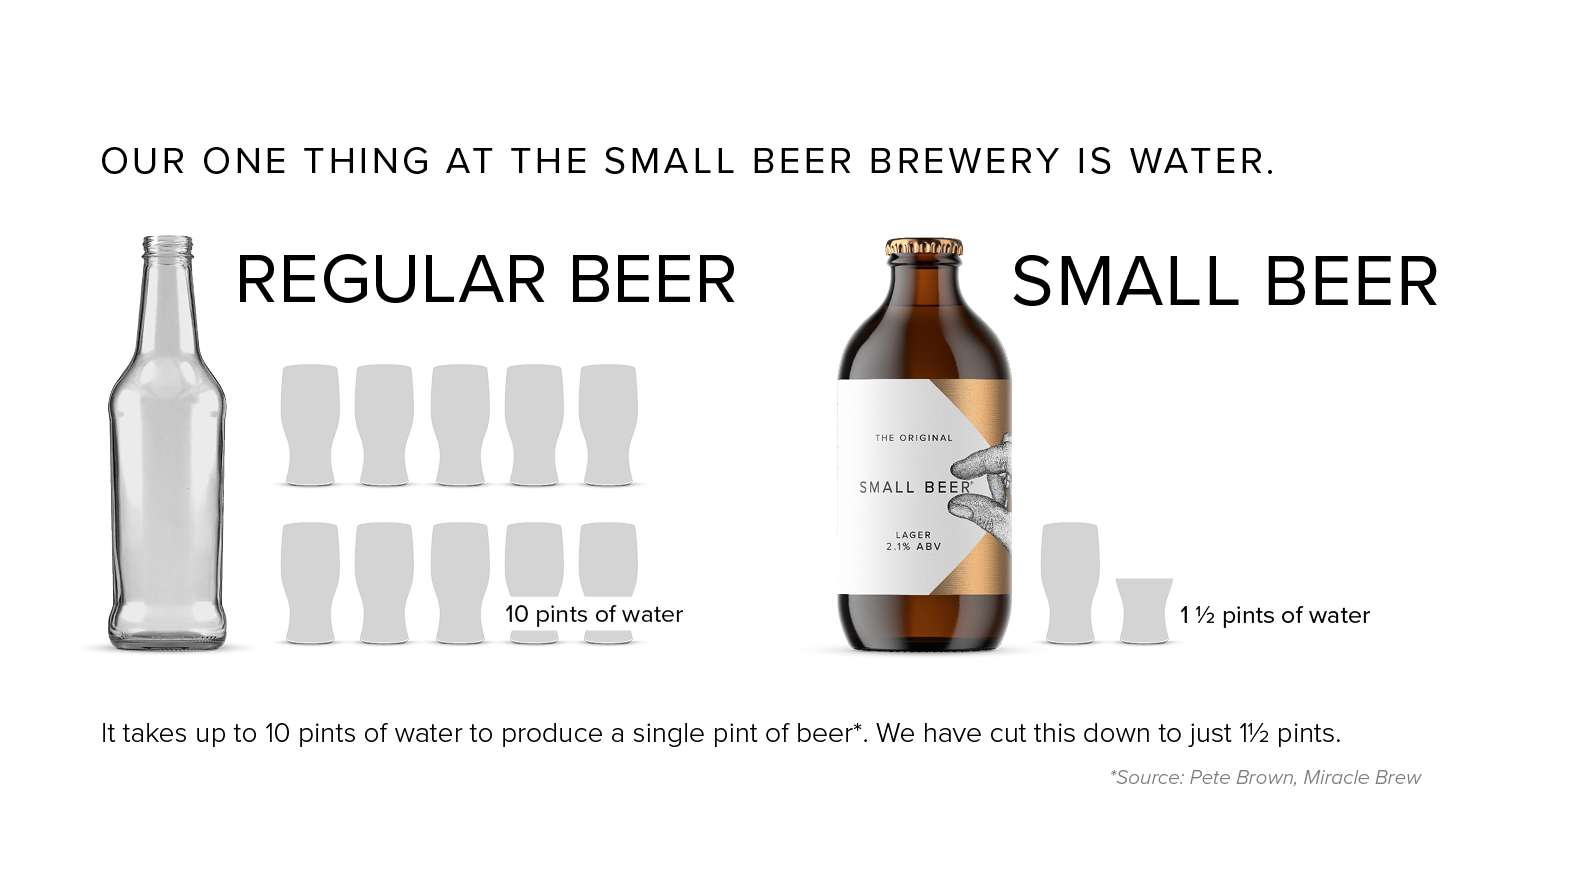 SMALL BEER INFOGRAPHIC.png